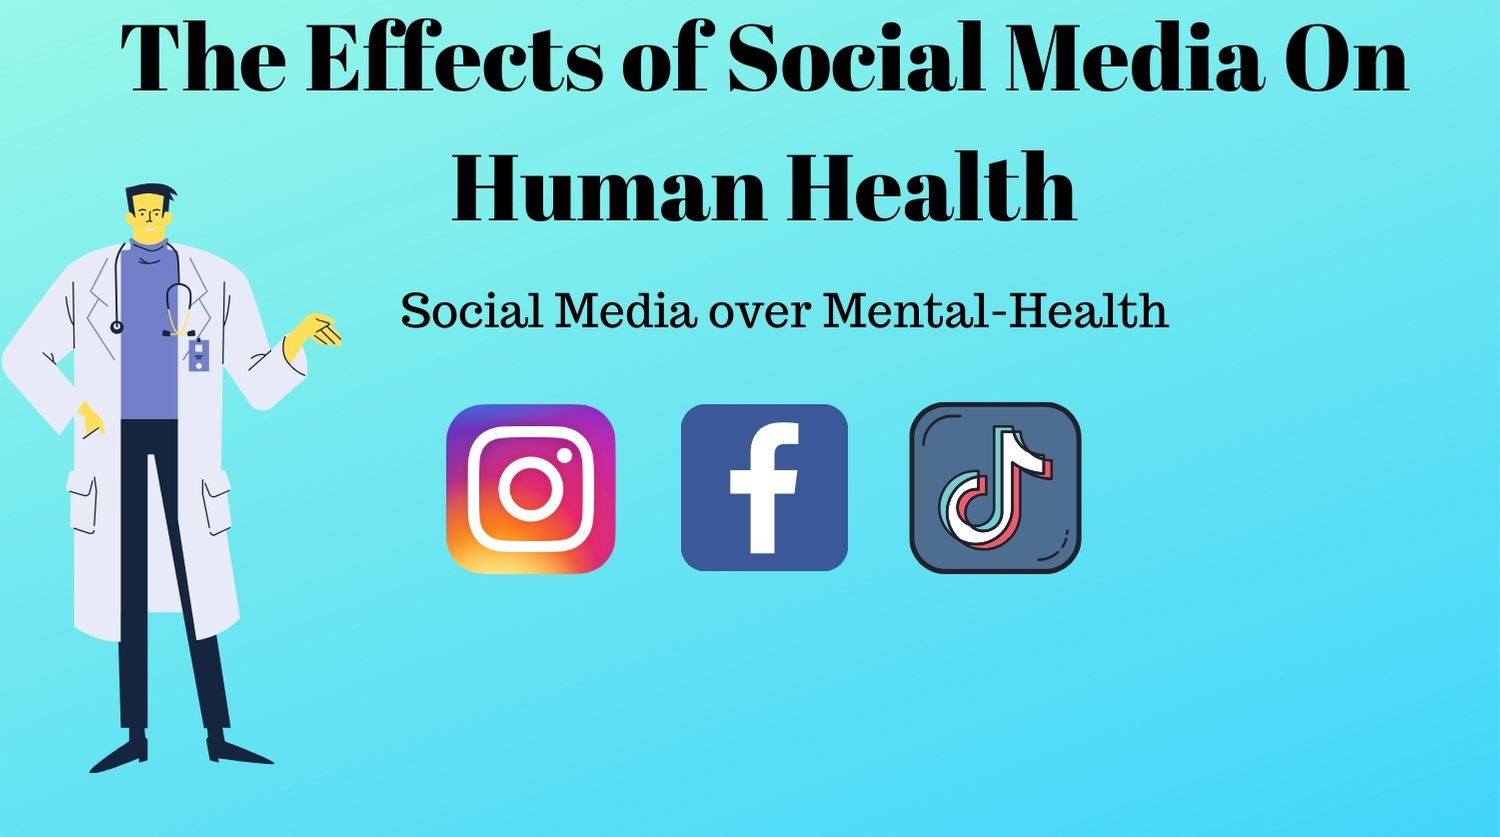 The Effects of Social Media On Human Health